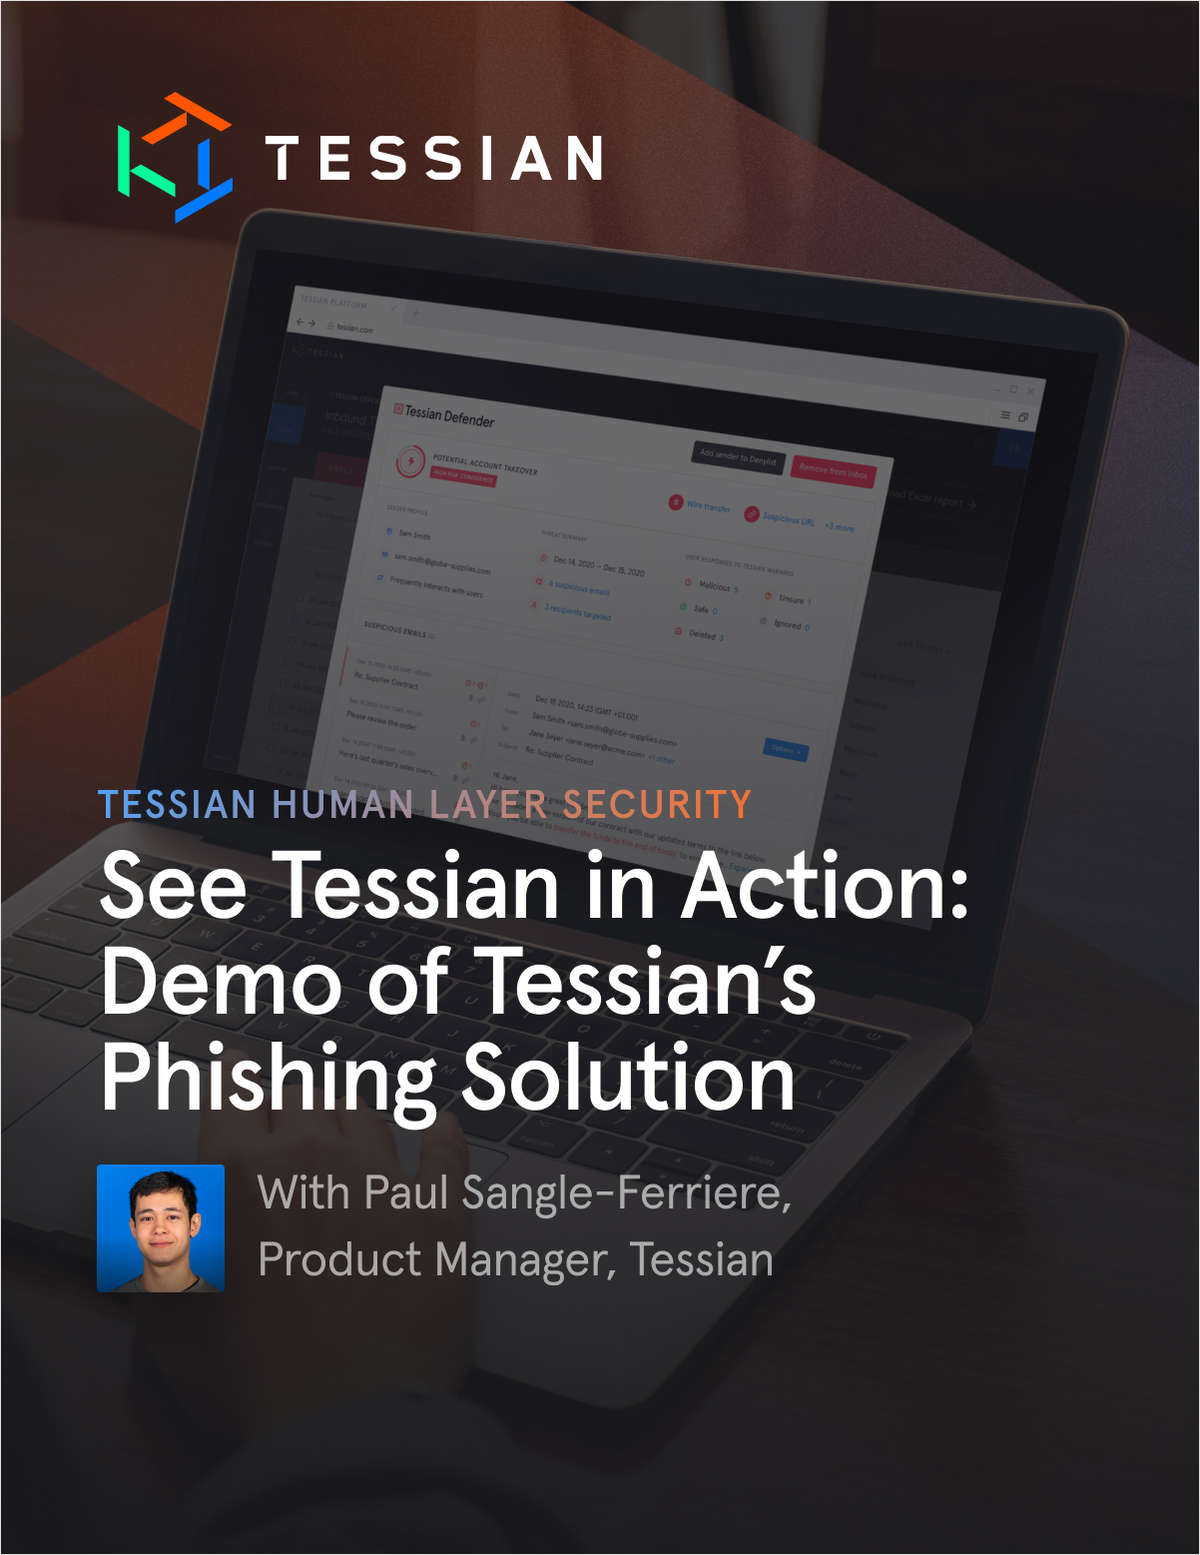 See Tessian in Action: Demo of Tessian's Phishing Solution